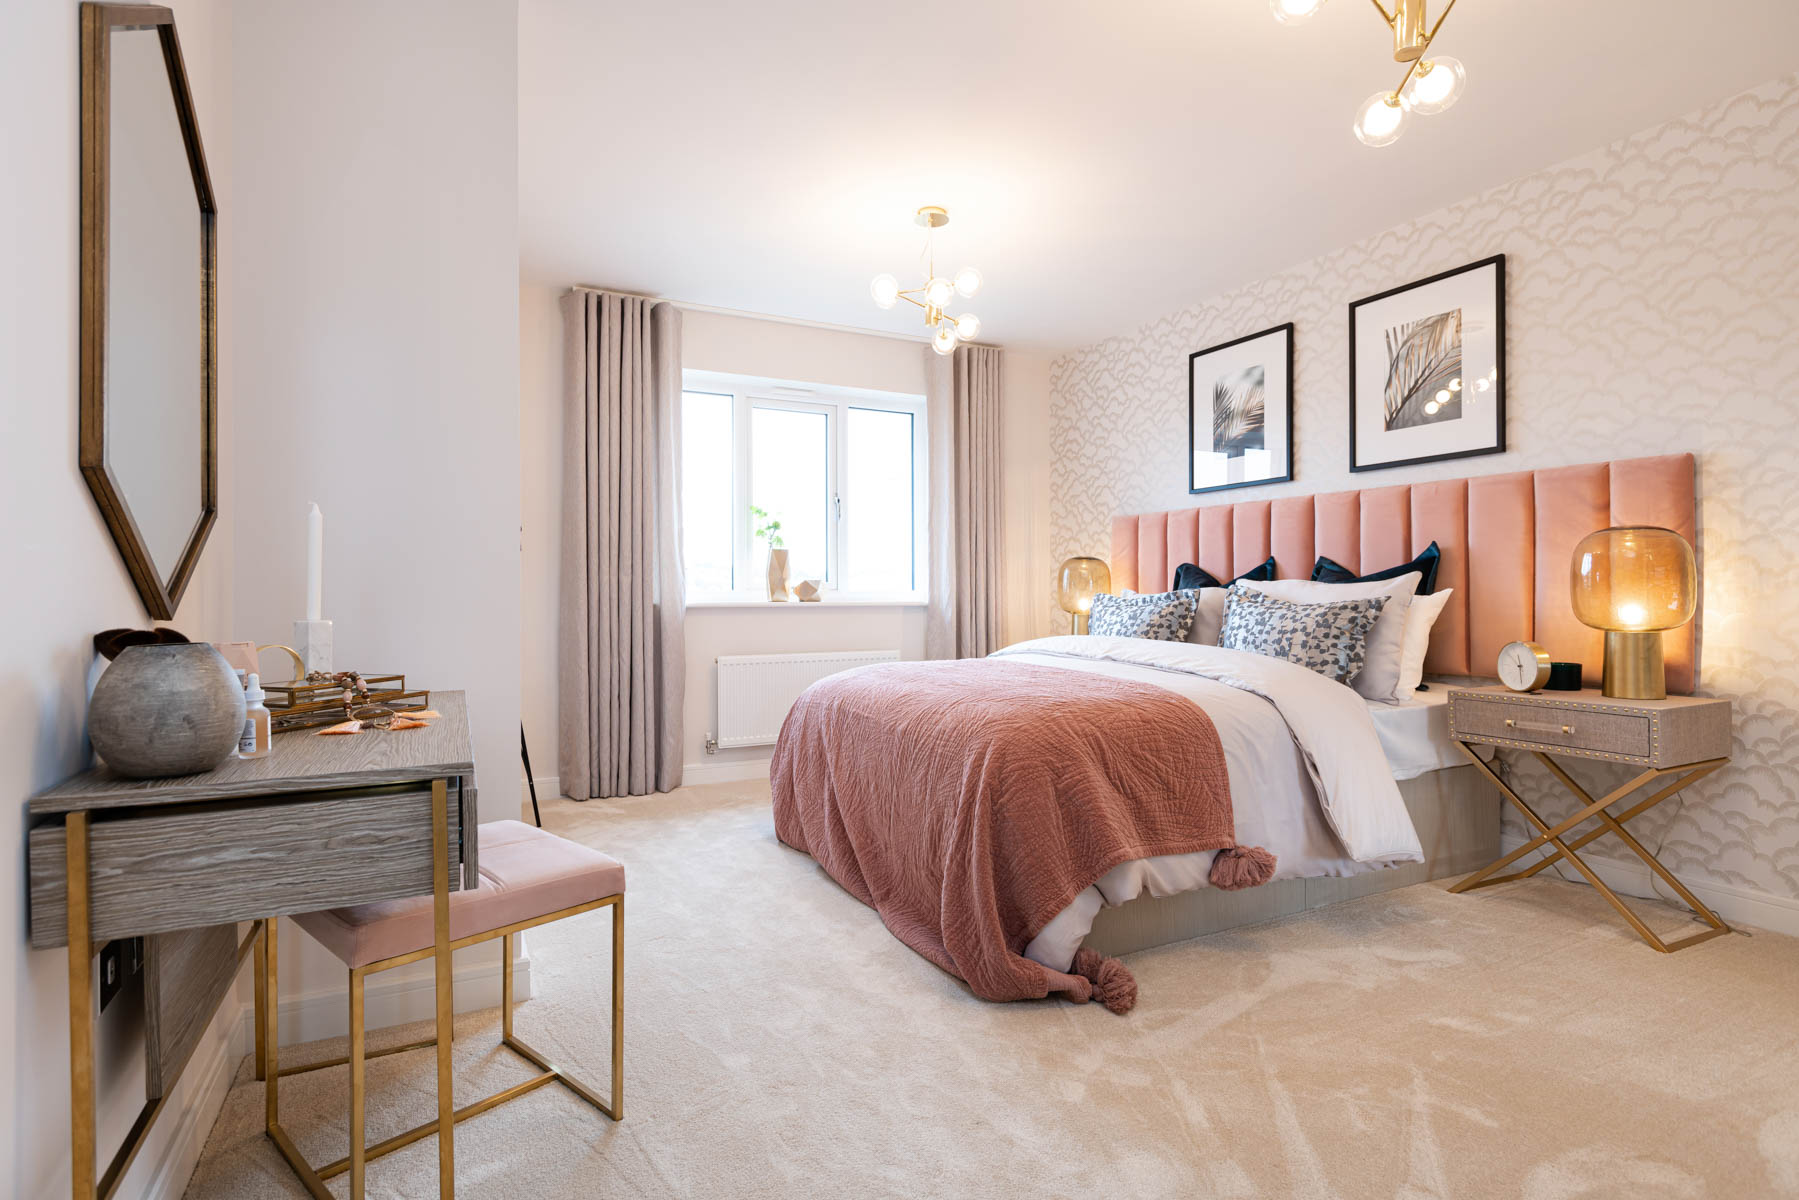 Taylor Wimpey - Mayfield Gardens - Marford bedroom